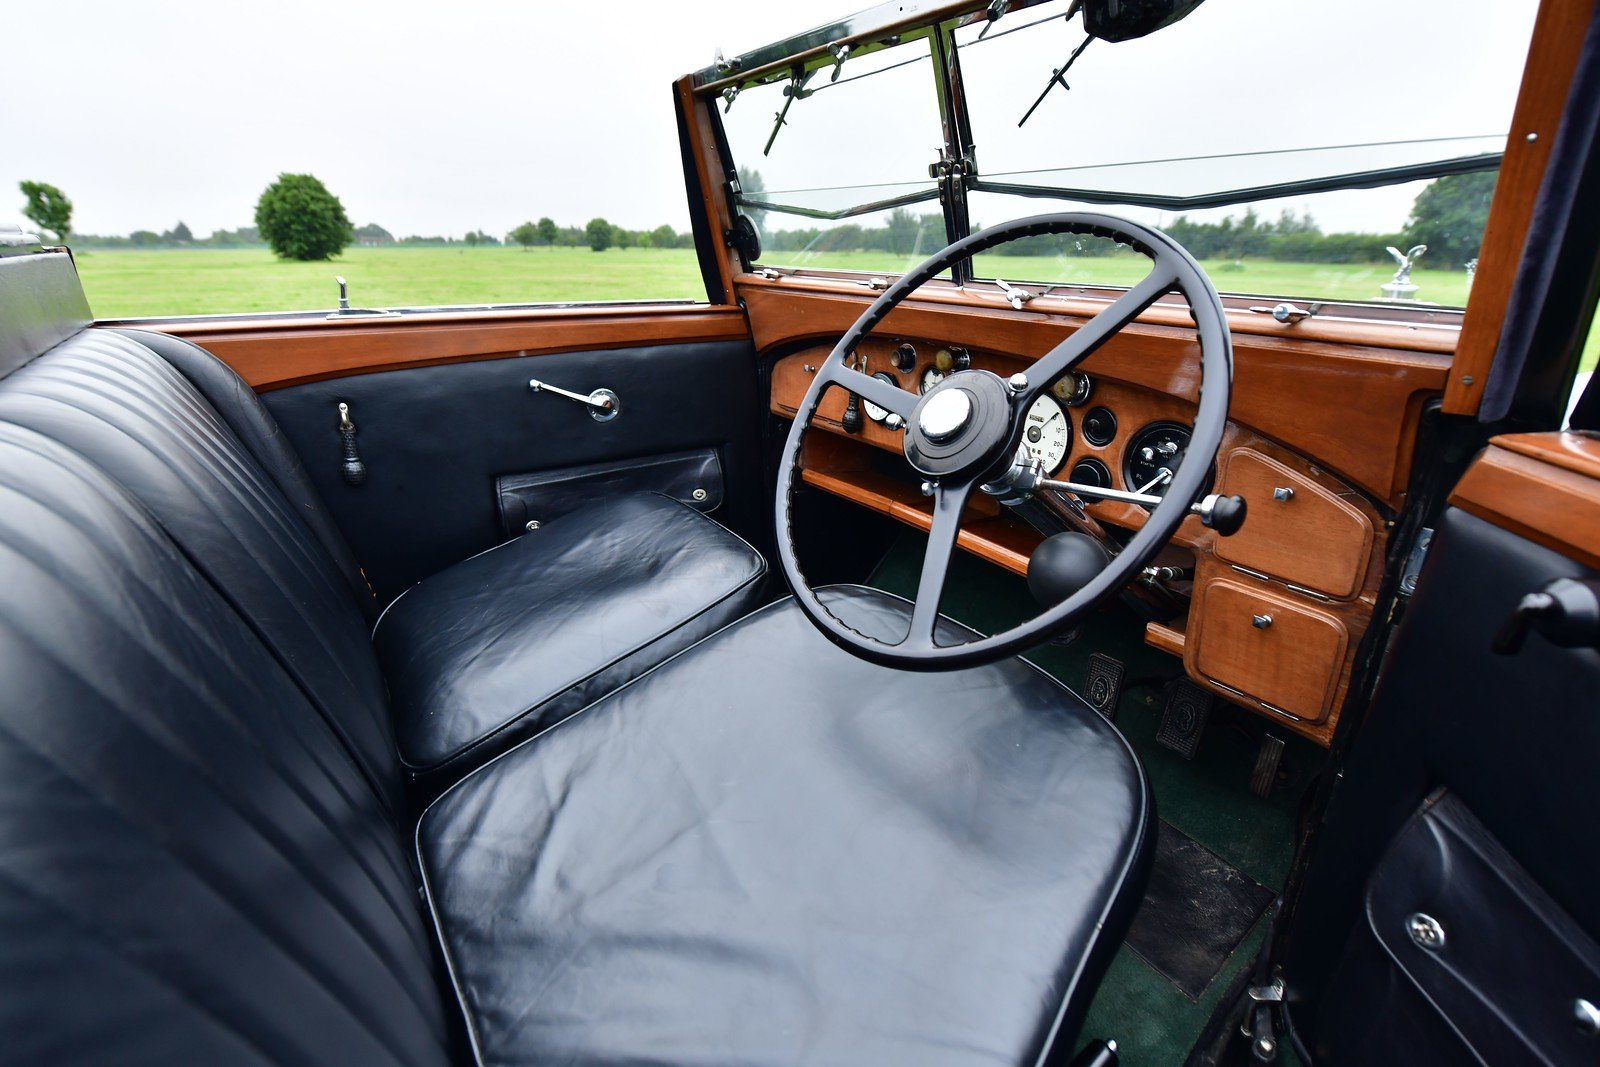 1938 Rolls-Royce Phantom III Four Light Cabriolet Coachwork  For Sale (picture 4 of 6)